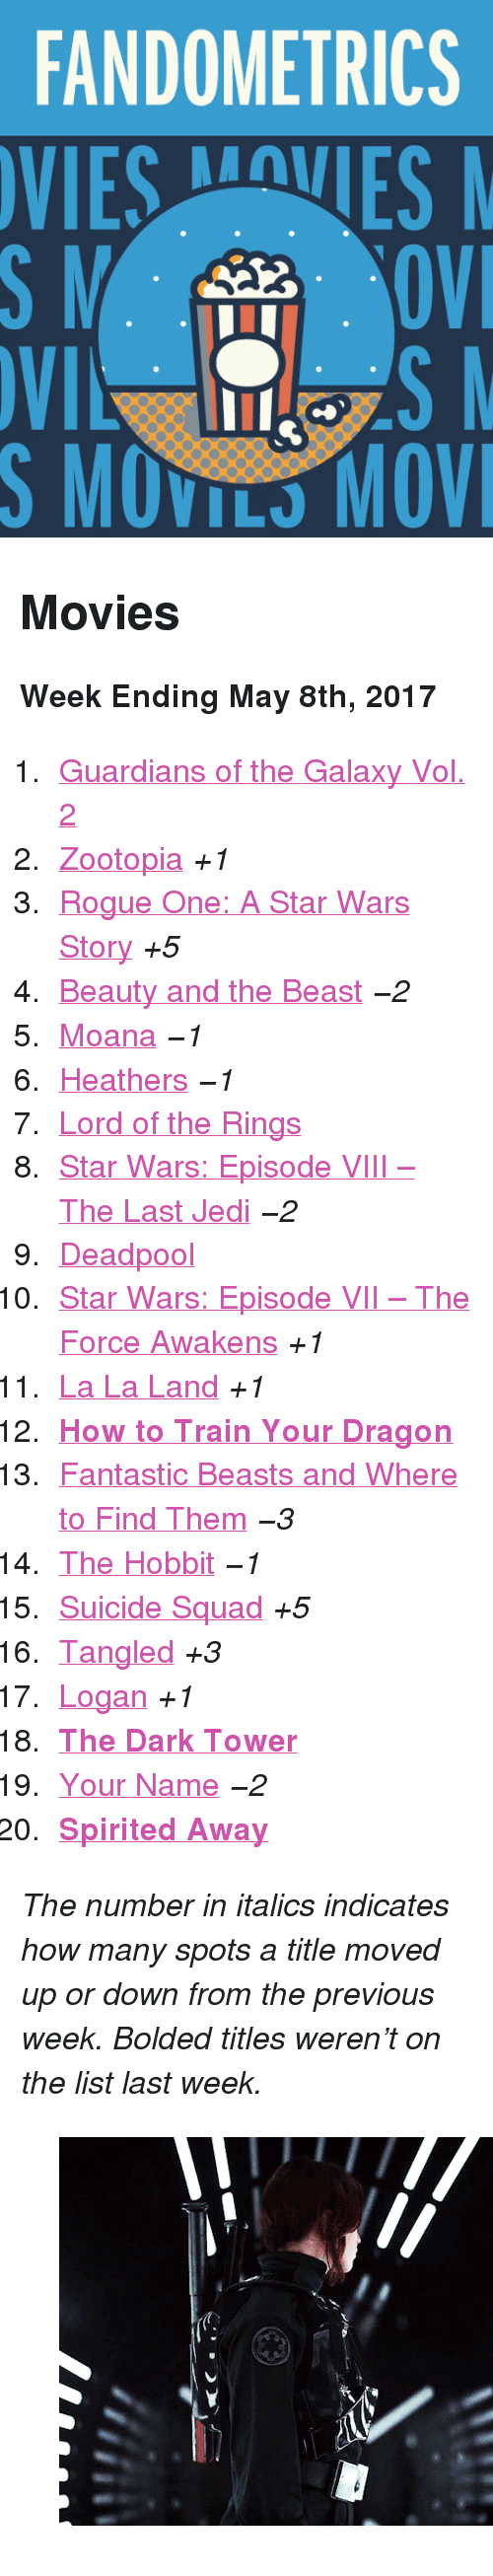 """Gif, Jedi, and Movies: FANDOMETRICS  VIESVES  S MOVILS MOV <h2>Movies</h2><p><b>Week Ending May 8th, 2017</b></p><ol><li><a href=""""http://tumblr.co/61378gsic"""">Guardians of the Galaxy Vol. 2</a></li><li><a href=""""http://tumblr.co/61318gsiW"""">Zootopia</a><i>+1</i></li><li><a href=""""http://tumblr.co/61328gsio"""">Rogue One: A Star Wars Story</a><i>+5</i></li><li><a href=""""http://tumblr.co/61338gsiU"""">Beauty and the Beast</a><i>−2</i></li><li><a href=""""http://tumblr.co/61348gsiq"""">Moana</a><i>−1</i></li><li><a href=""""http://tumblr.co/61358gsiS"""">Heathers</a><i>−1</i></li><li><a href=""""http://tumblr.co/61368gsis"""">Lord of the Rings</a></li><li><a href=""""http://tumblr.co/61378gsit"""">Star Wars: Episode VIII – The Last Jedi</a><i>−2</i></li><li><a href=""""http://tumblr.co/61388gsiQ"""">Deadpool</a></li><li><a href=""""http://tumblr.co/61398gsiv"""">Star Wars: Episode VII – The Force Awakens</a><i>+1</i></li><li><a href=""""http://tumblr.co/61308gsia"""">La La Land</a><i>+1</i></li><li><a href=""""http://tumblr.co/61318gsix""""><b>How to Train Your Dragon</b></a></li><li><a href=""""http://tumblr.co/61338gsiL"""">Fantastic Beasts and Where to Find Them</a><i>−3</i></li><li><a href=""""http://tumblr.co/61348gsi0"""">The Hobbit</a><i>−1</i></li><li><a href=""""http://tumblr.co/61358gsiF"""">Suicide Squad</a><i>+5</i></li><li><a href=""""http://tumblr.co/61378gsiN"""">Tangled</a><i>+3</i></li><li><a href=""""http://tumblr.co/61388gsi4"""">Logan</a><i>+1</i></li><li><a href=""""http://tumblr.co/61398gsif""""><b>The Dark Tower</b></a></li><li><a href=""""http://tumblr.co/61308gsiA"""">Your Name</a><i>−2</i></li><li><a href=""""http://tumblr.co/61328gsiC""""><b>Spirited Away</b></a></li></ol><p><i>The number in italics indicates how many spots a title moved up or down from the previous week. Bolded titles weren't on the list last week.</i></p><figure class=""""tmblr-full"""" data-orig-height=""""211"""" data-orig-width=""""500"""" data-tumblr-attribution=""""starwars-gifs:nc6gHQNXaQ36pGIaxvu4aA:ZHJ1lt2HF4tM9""""><img src=""""https://78.media.tumblr.com/caca281c7d39a2a4a05af51ec5fe6847/tumblr_o"""